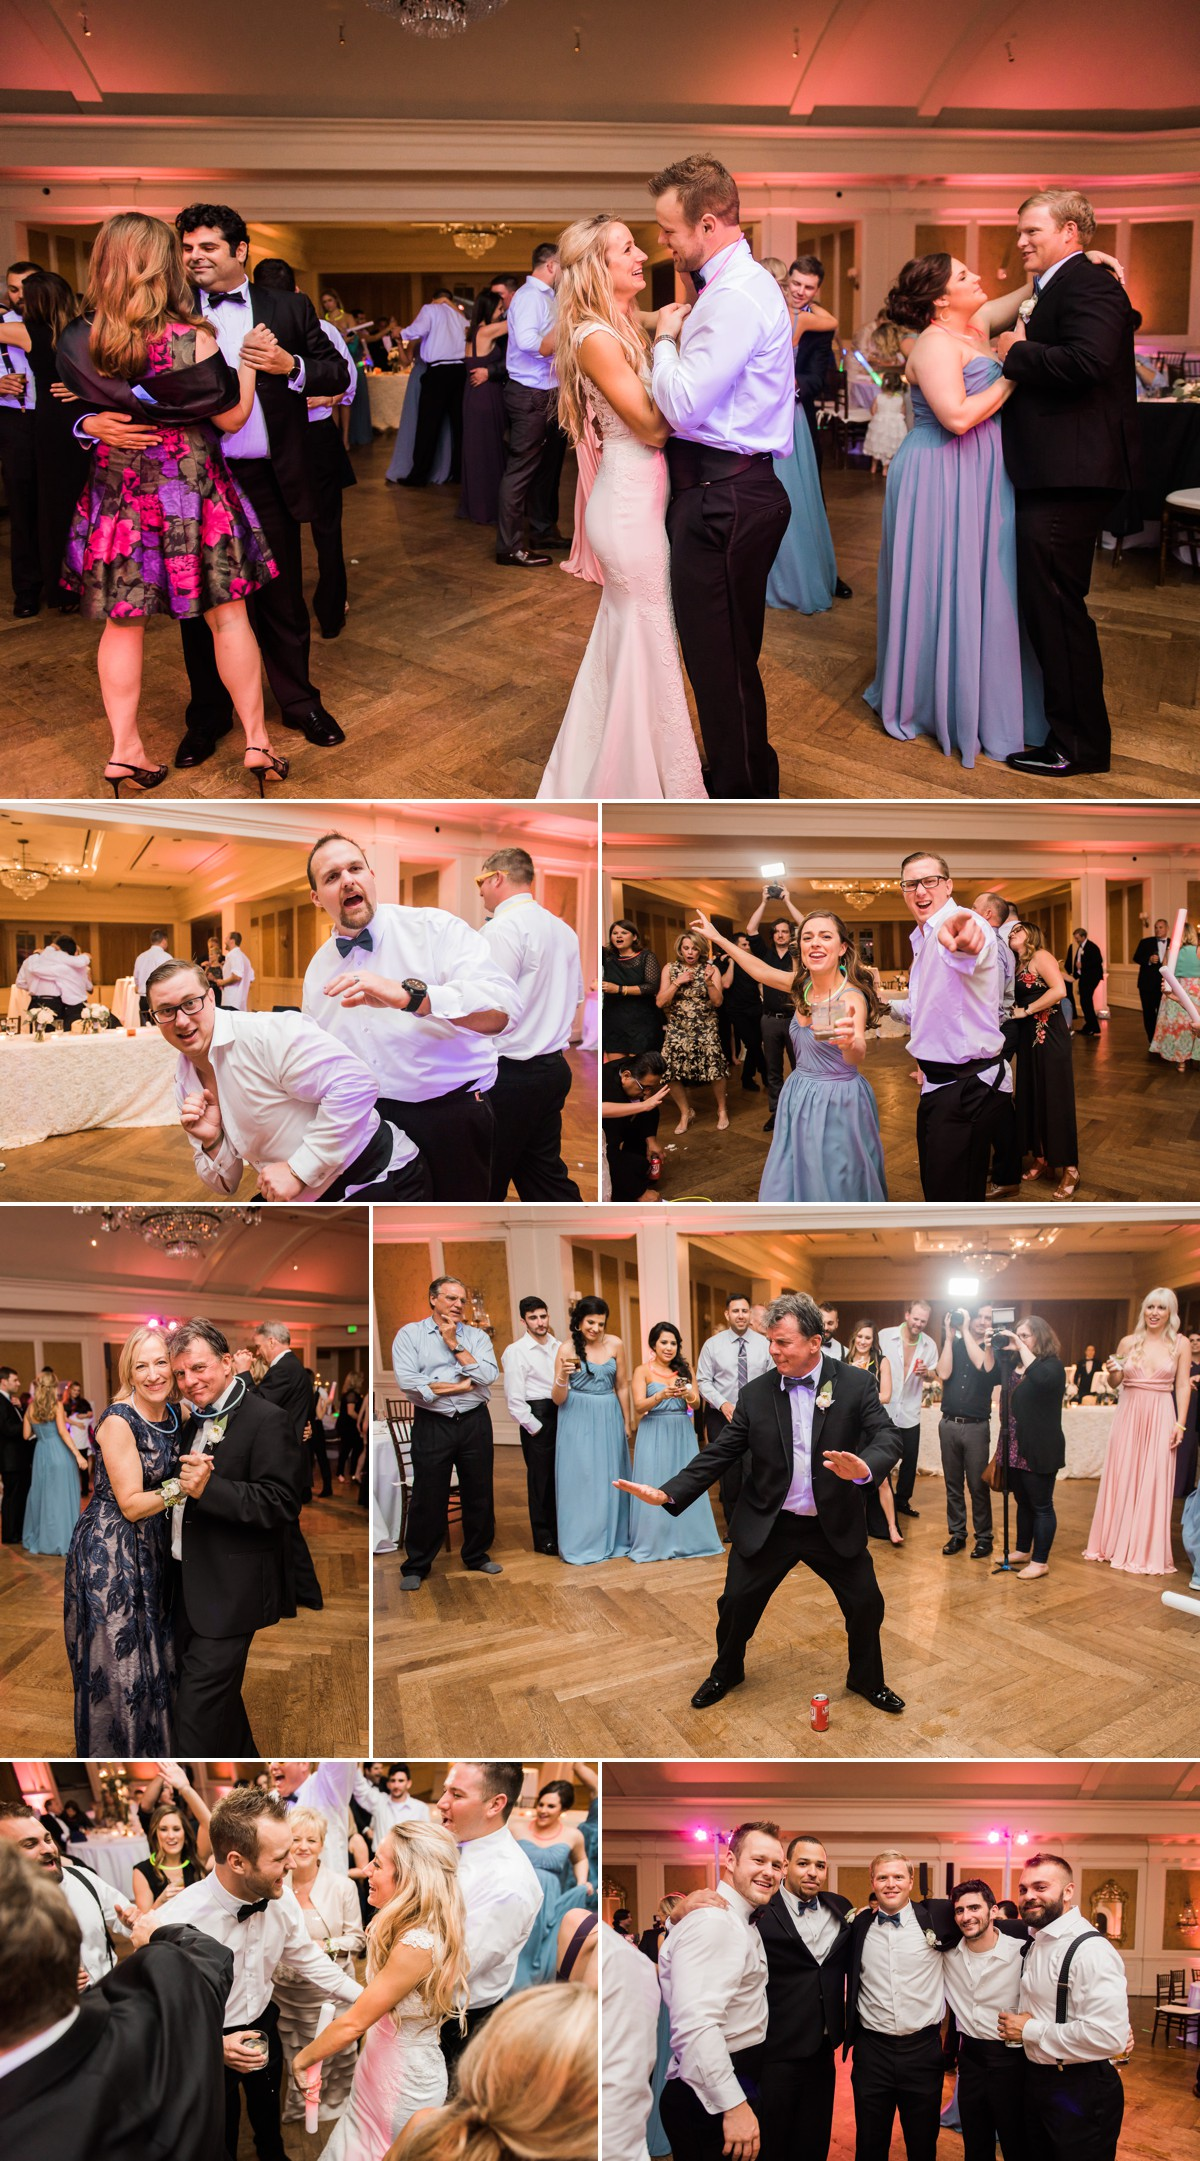 Laura & Jared Wedding Party Hall Photos